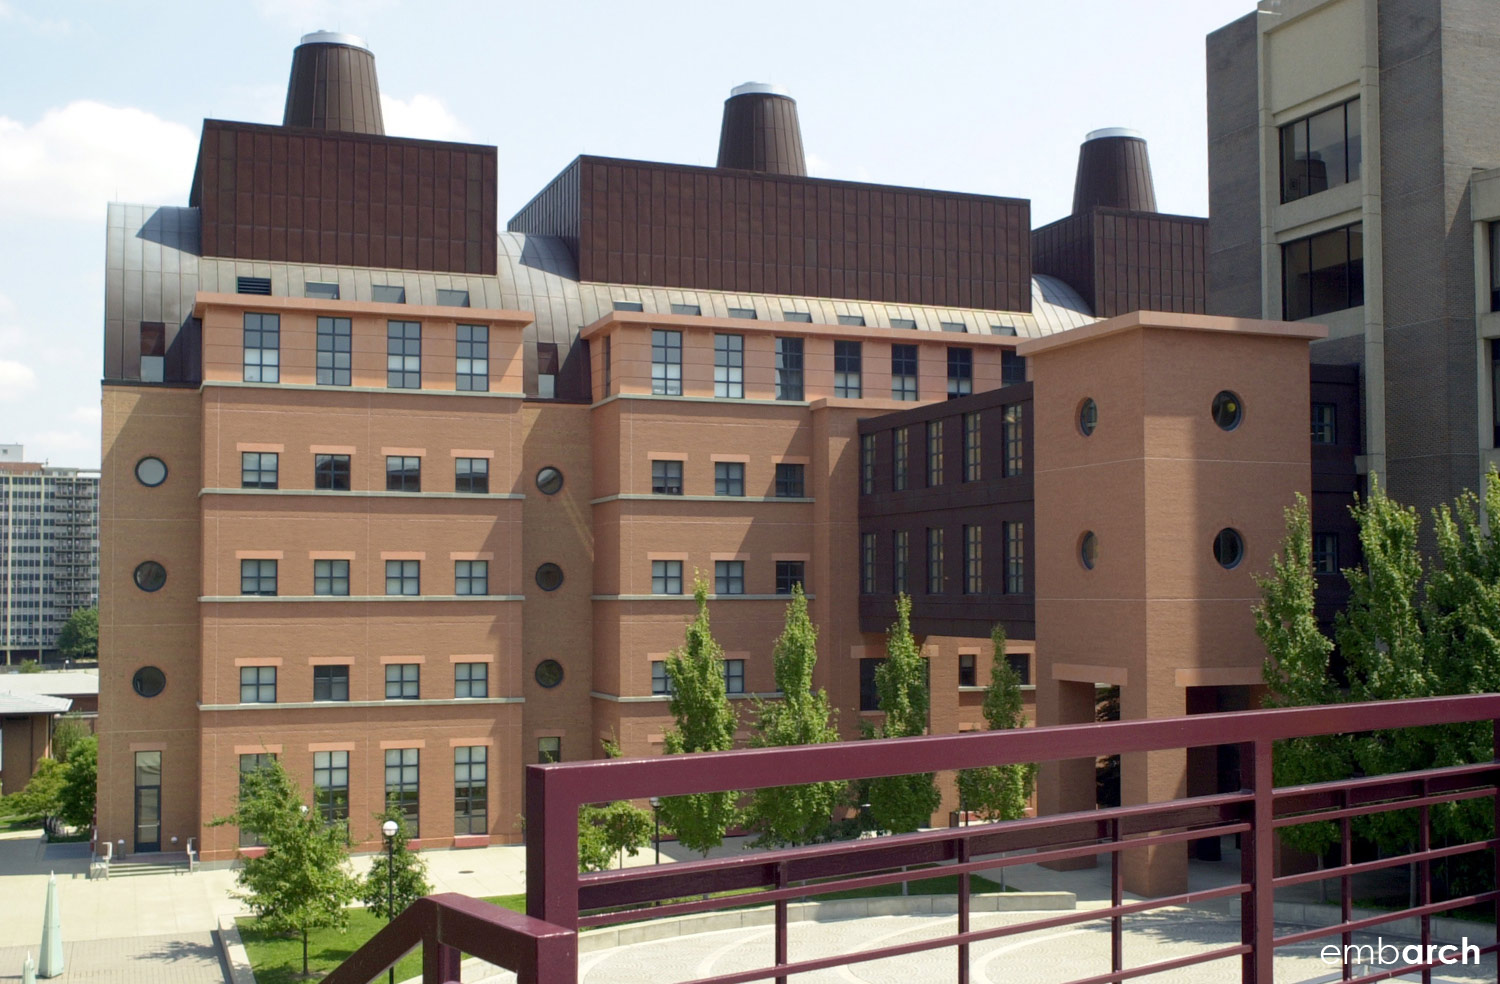 Applied Science Building at the University of Cincinnati